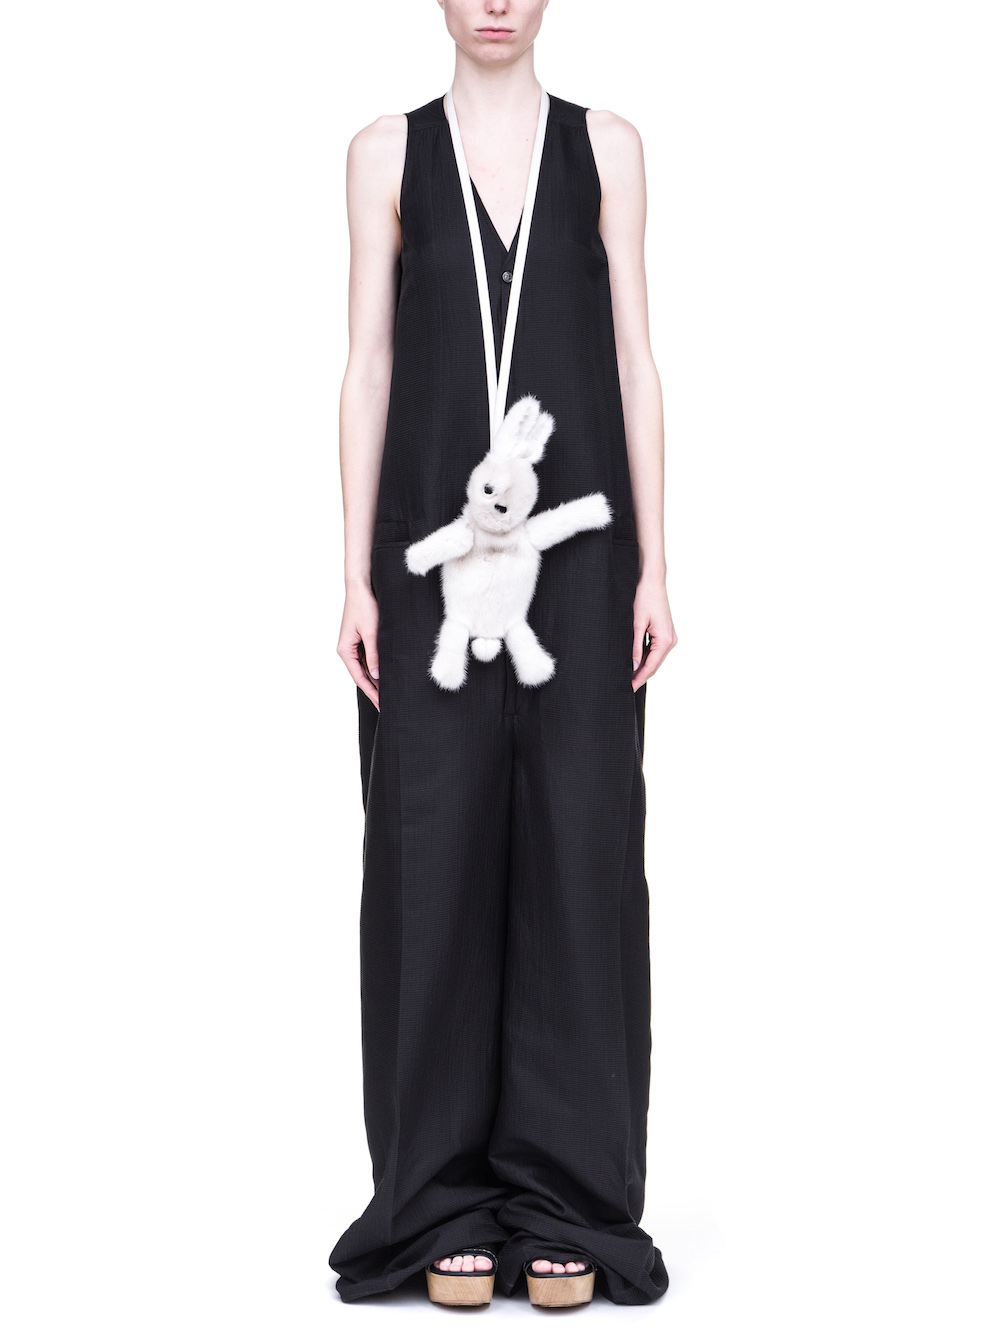 RICK OWENS HUN FAT BUNNY IN WHITE FEATURES A LONG HAIR MINK FUR BODY